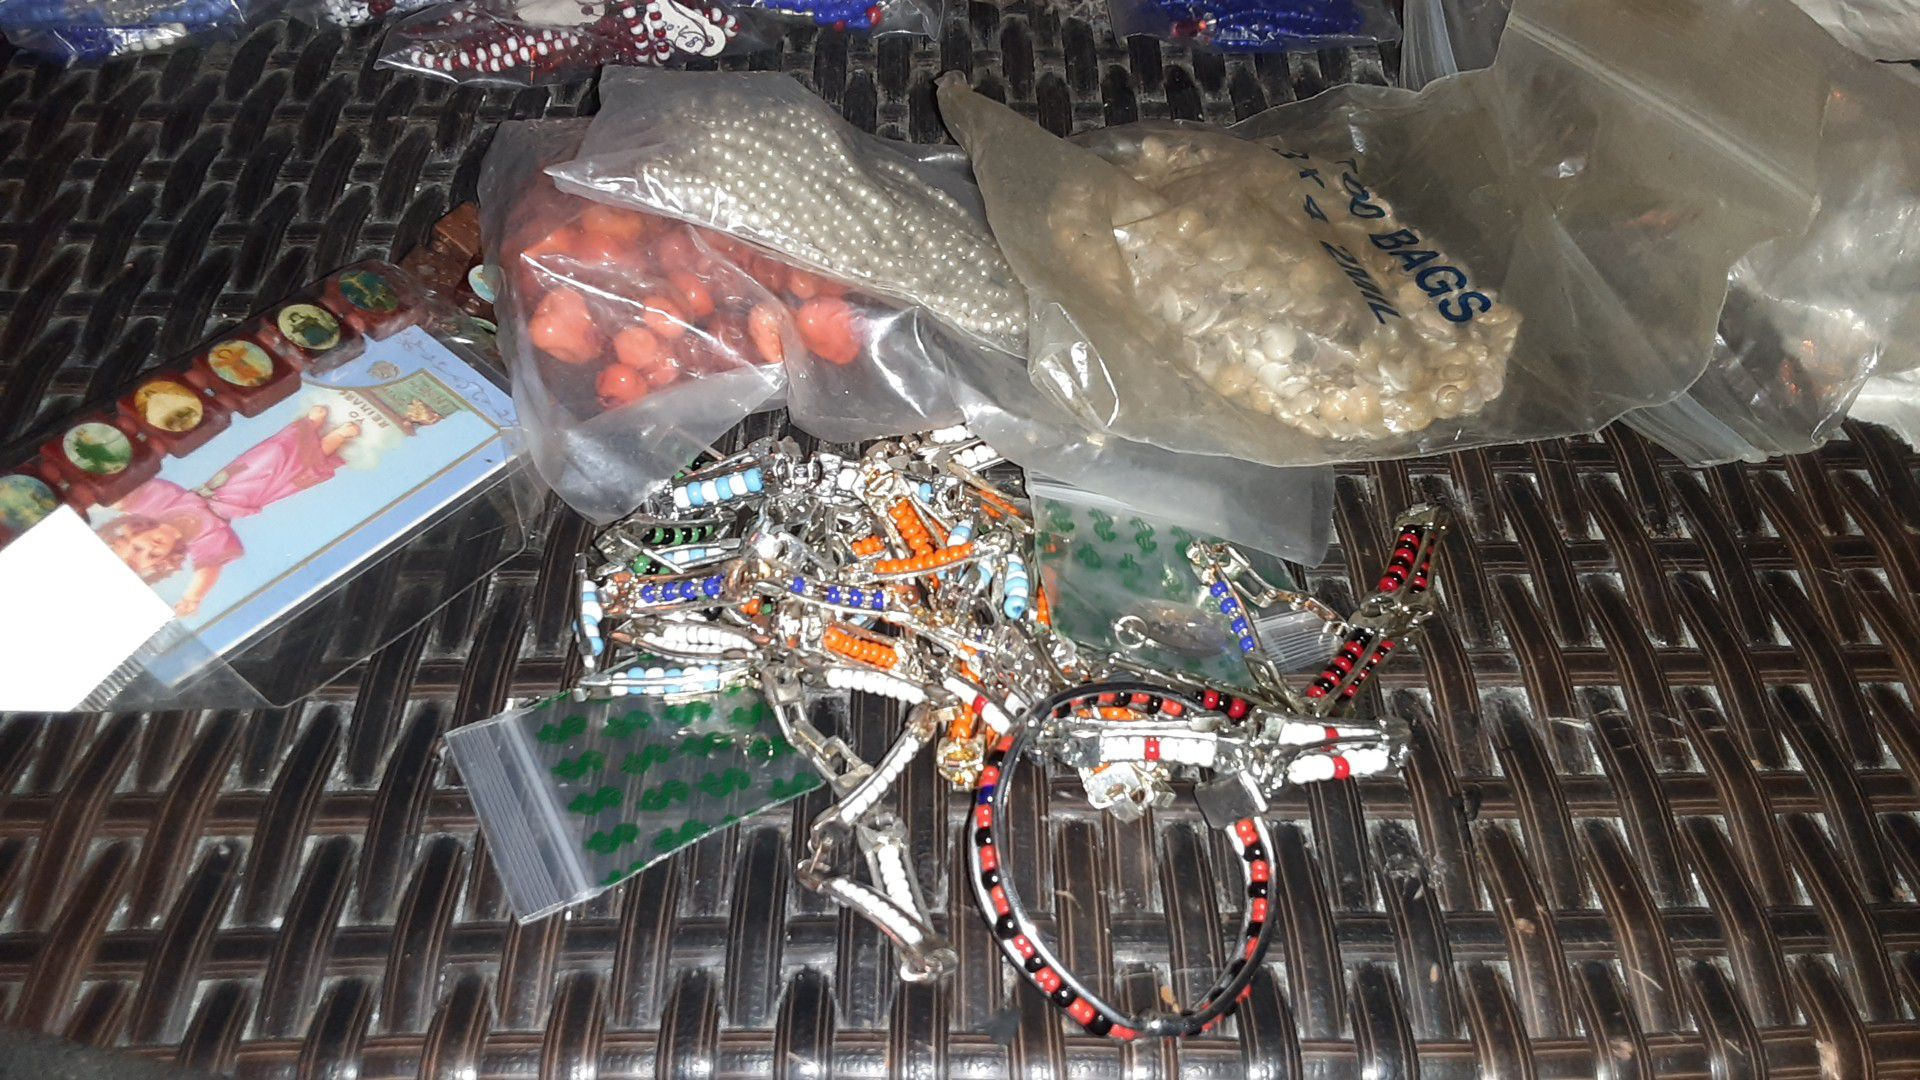 Religious necklaces and bracelets